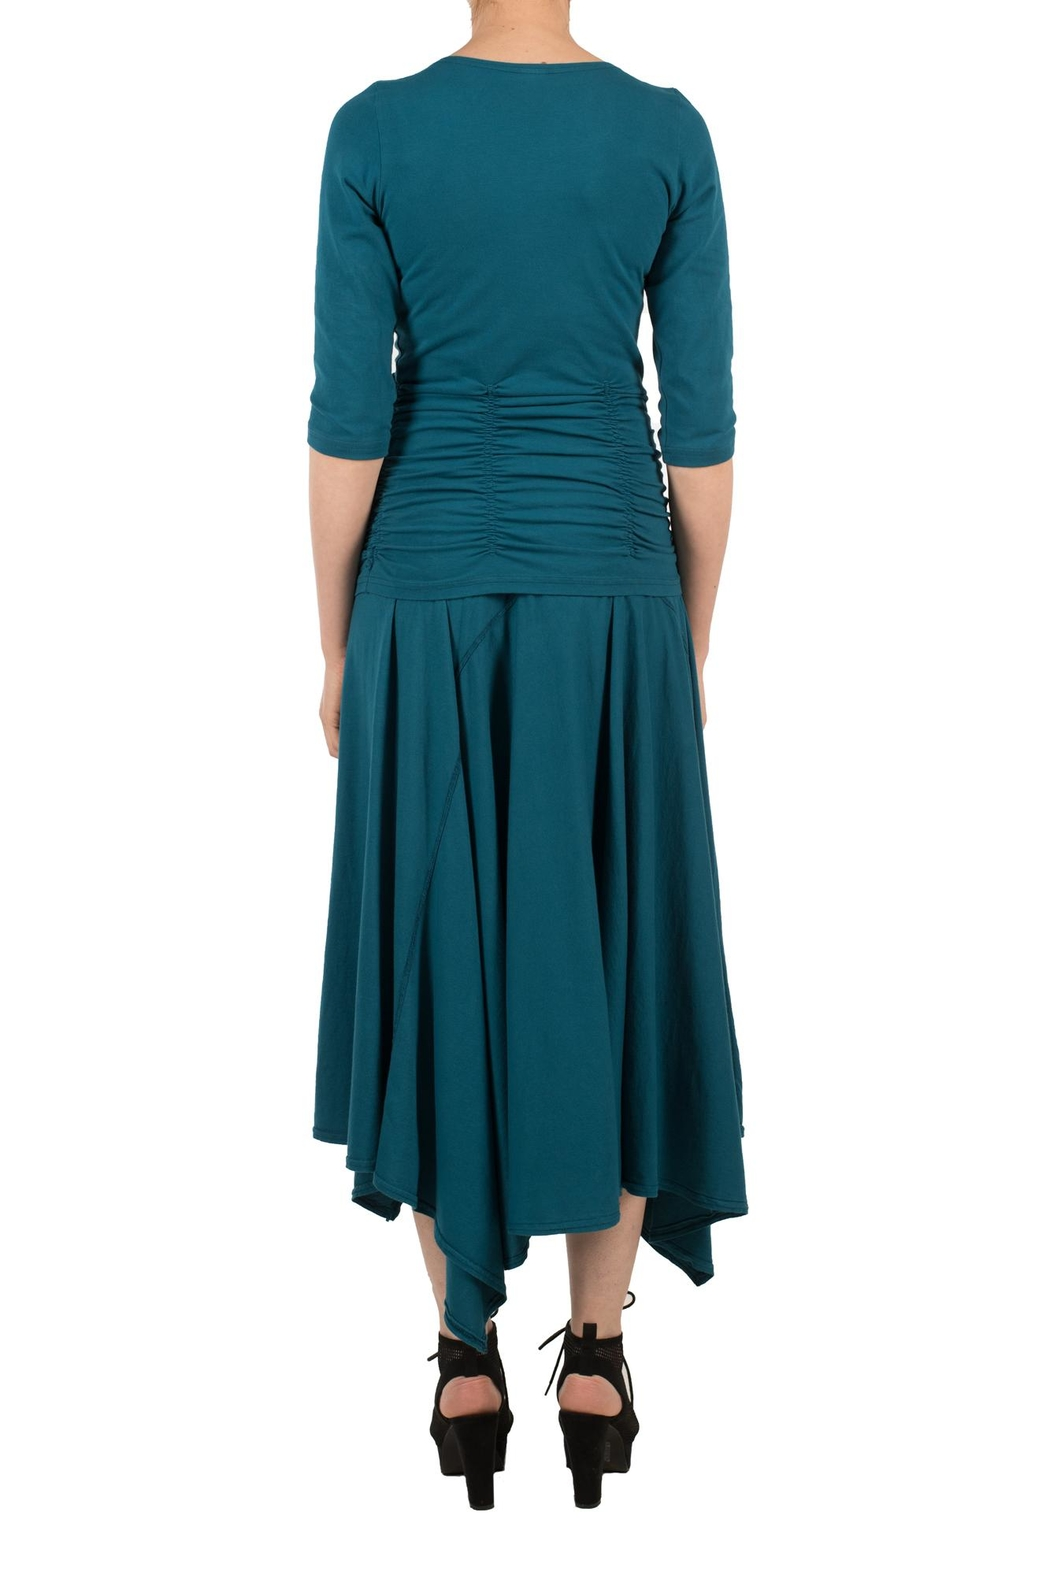 Magdalena Gathered Teal Top - Side Cropped Image